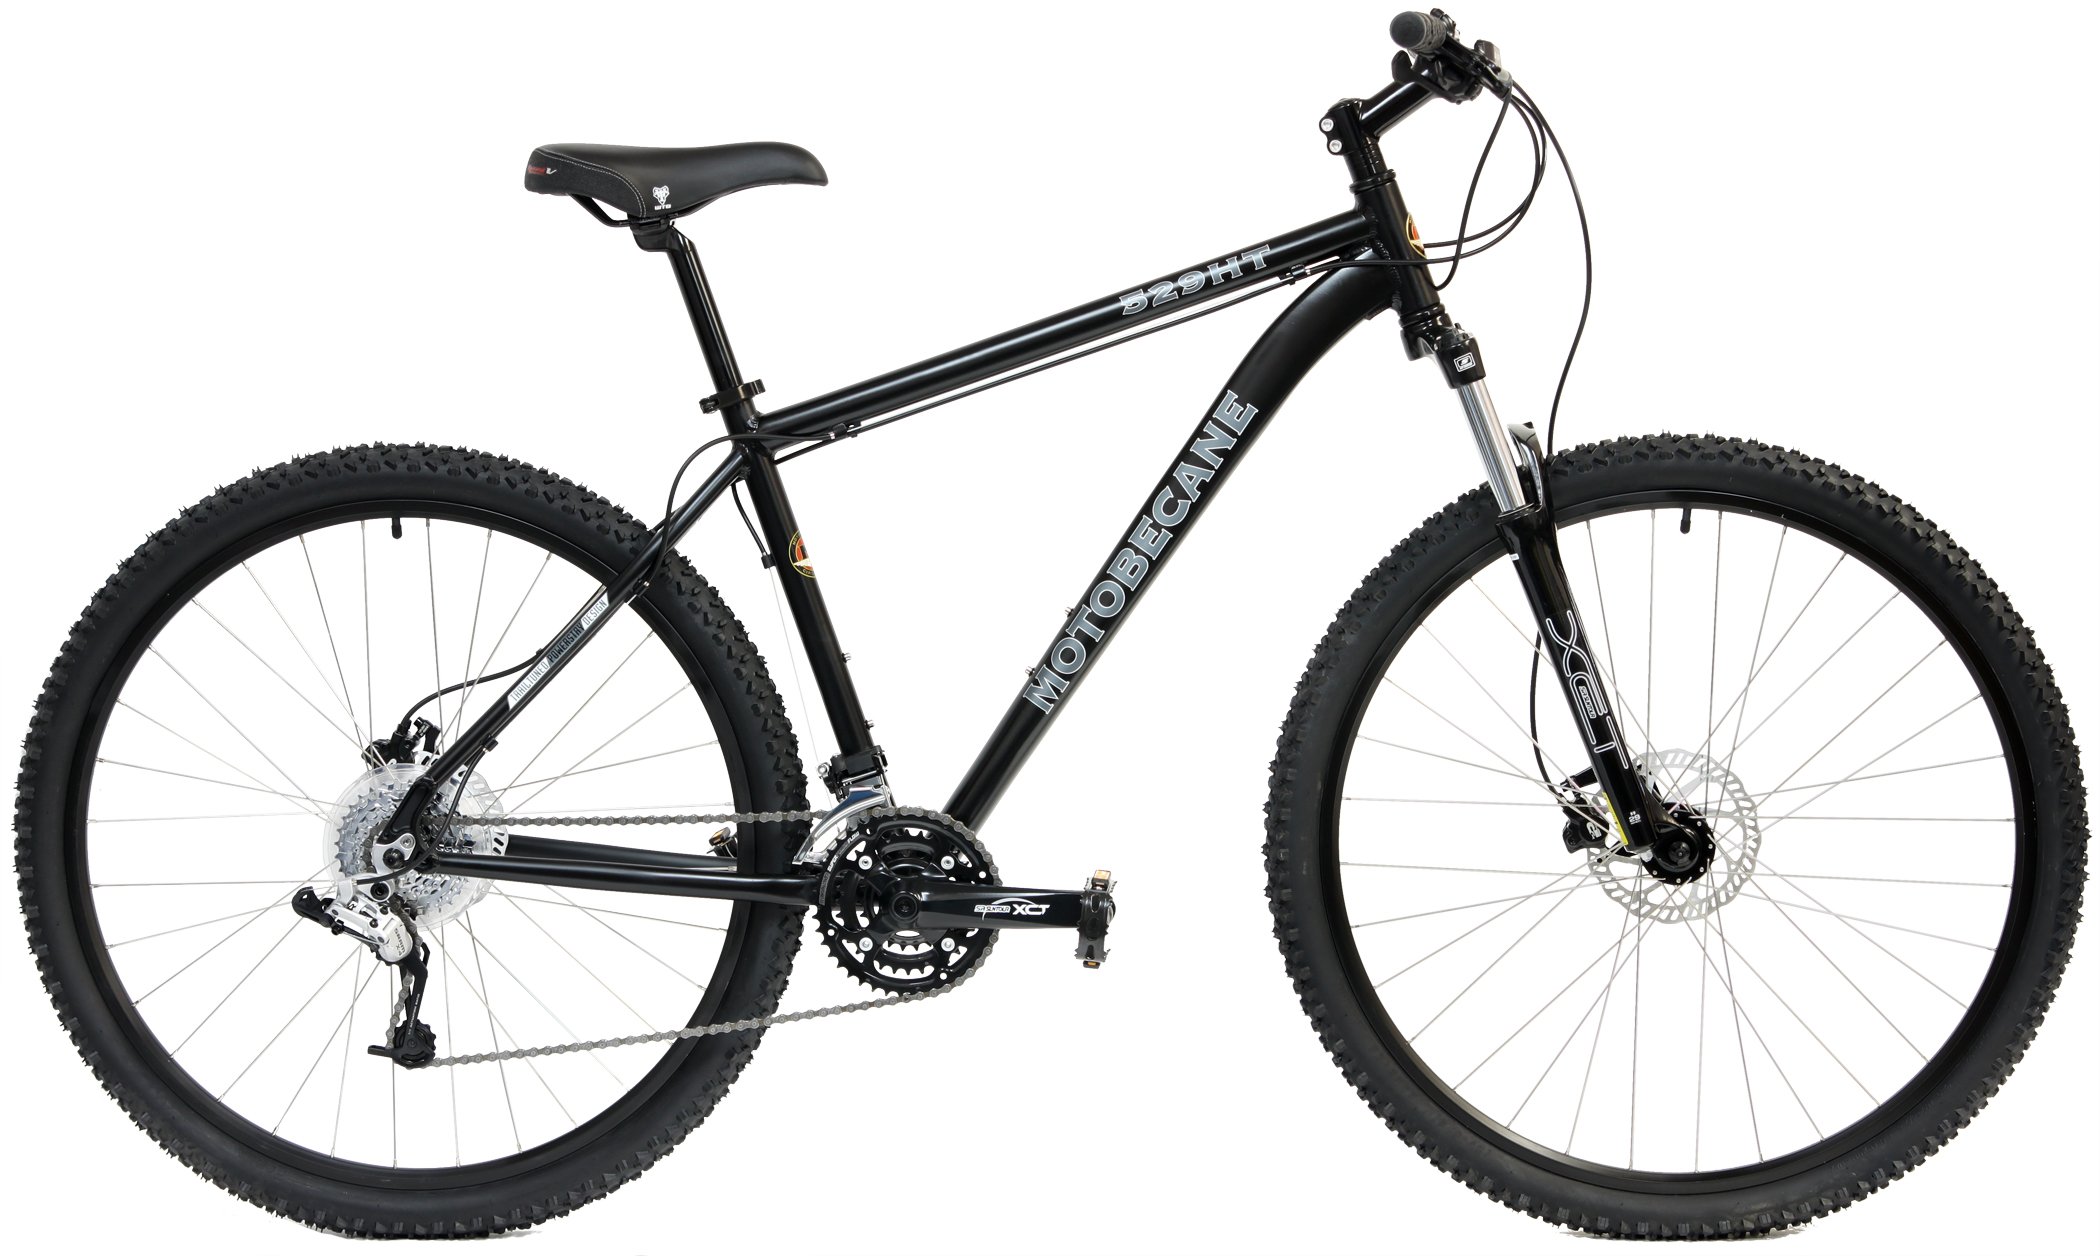 29er Mountain Bikes Up To 60% Off